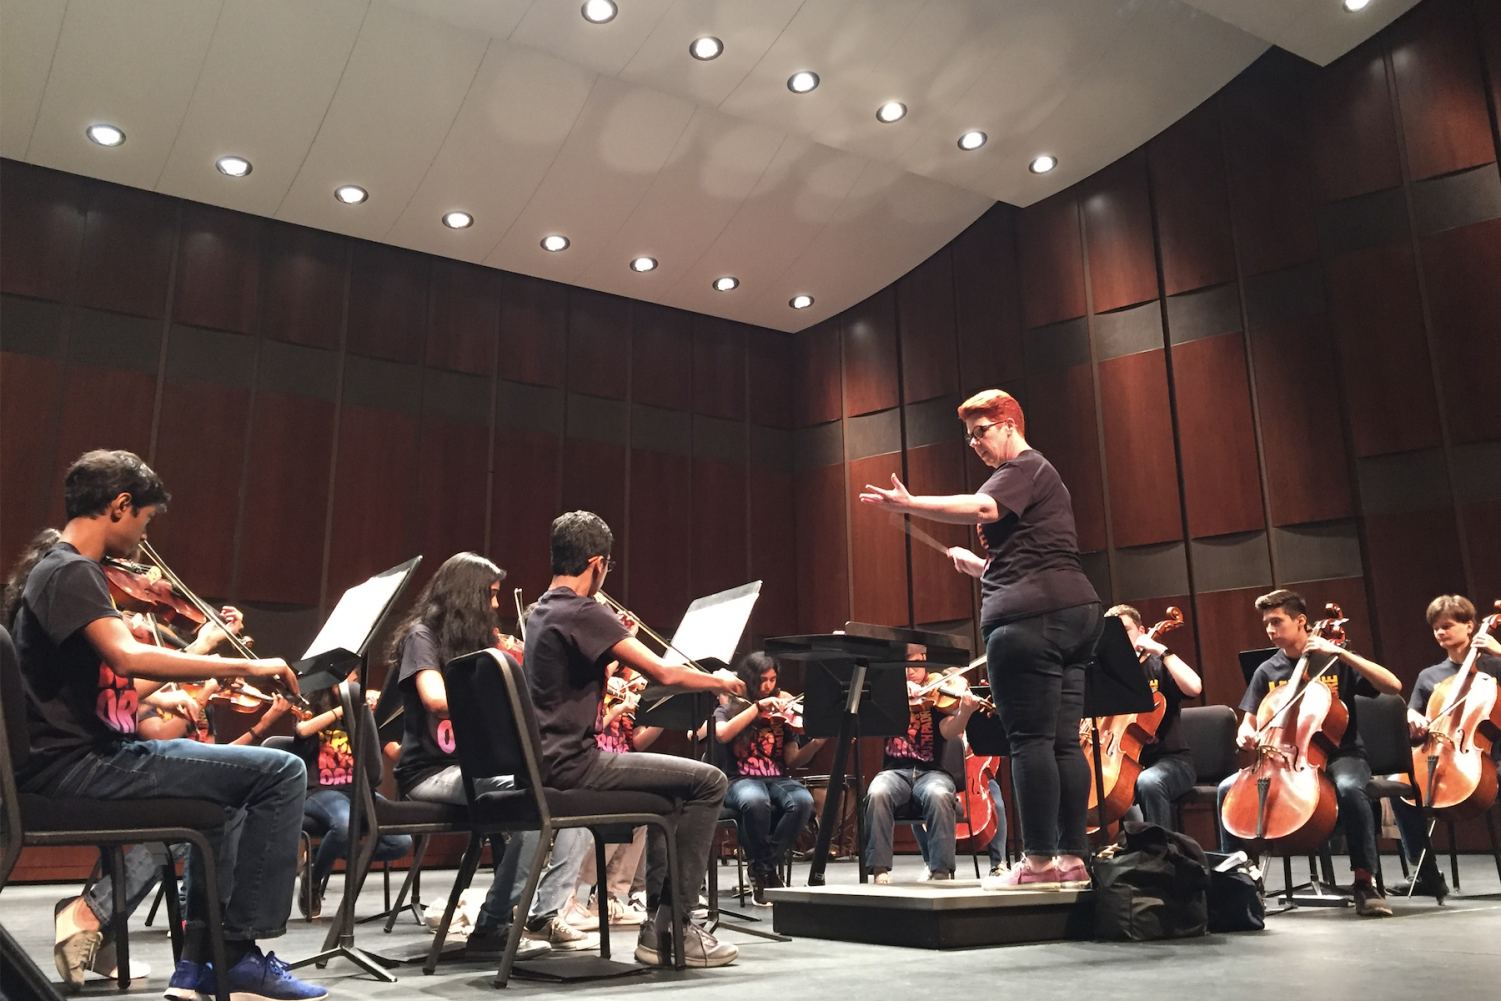 Orchestra director Julie Blackstock conducts one of two Redhawk ensembles that performed at the Eisemann Center on the morning of Friday, April 5. Students then returned to campus before leaving for South Padre on their annual spring trip.